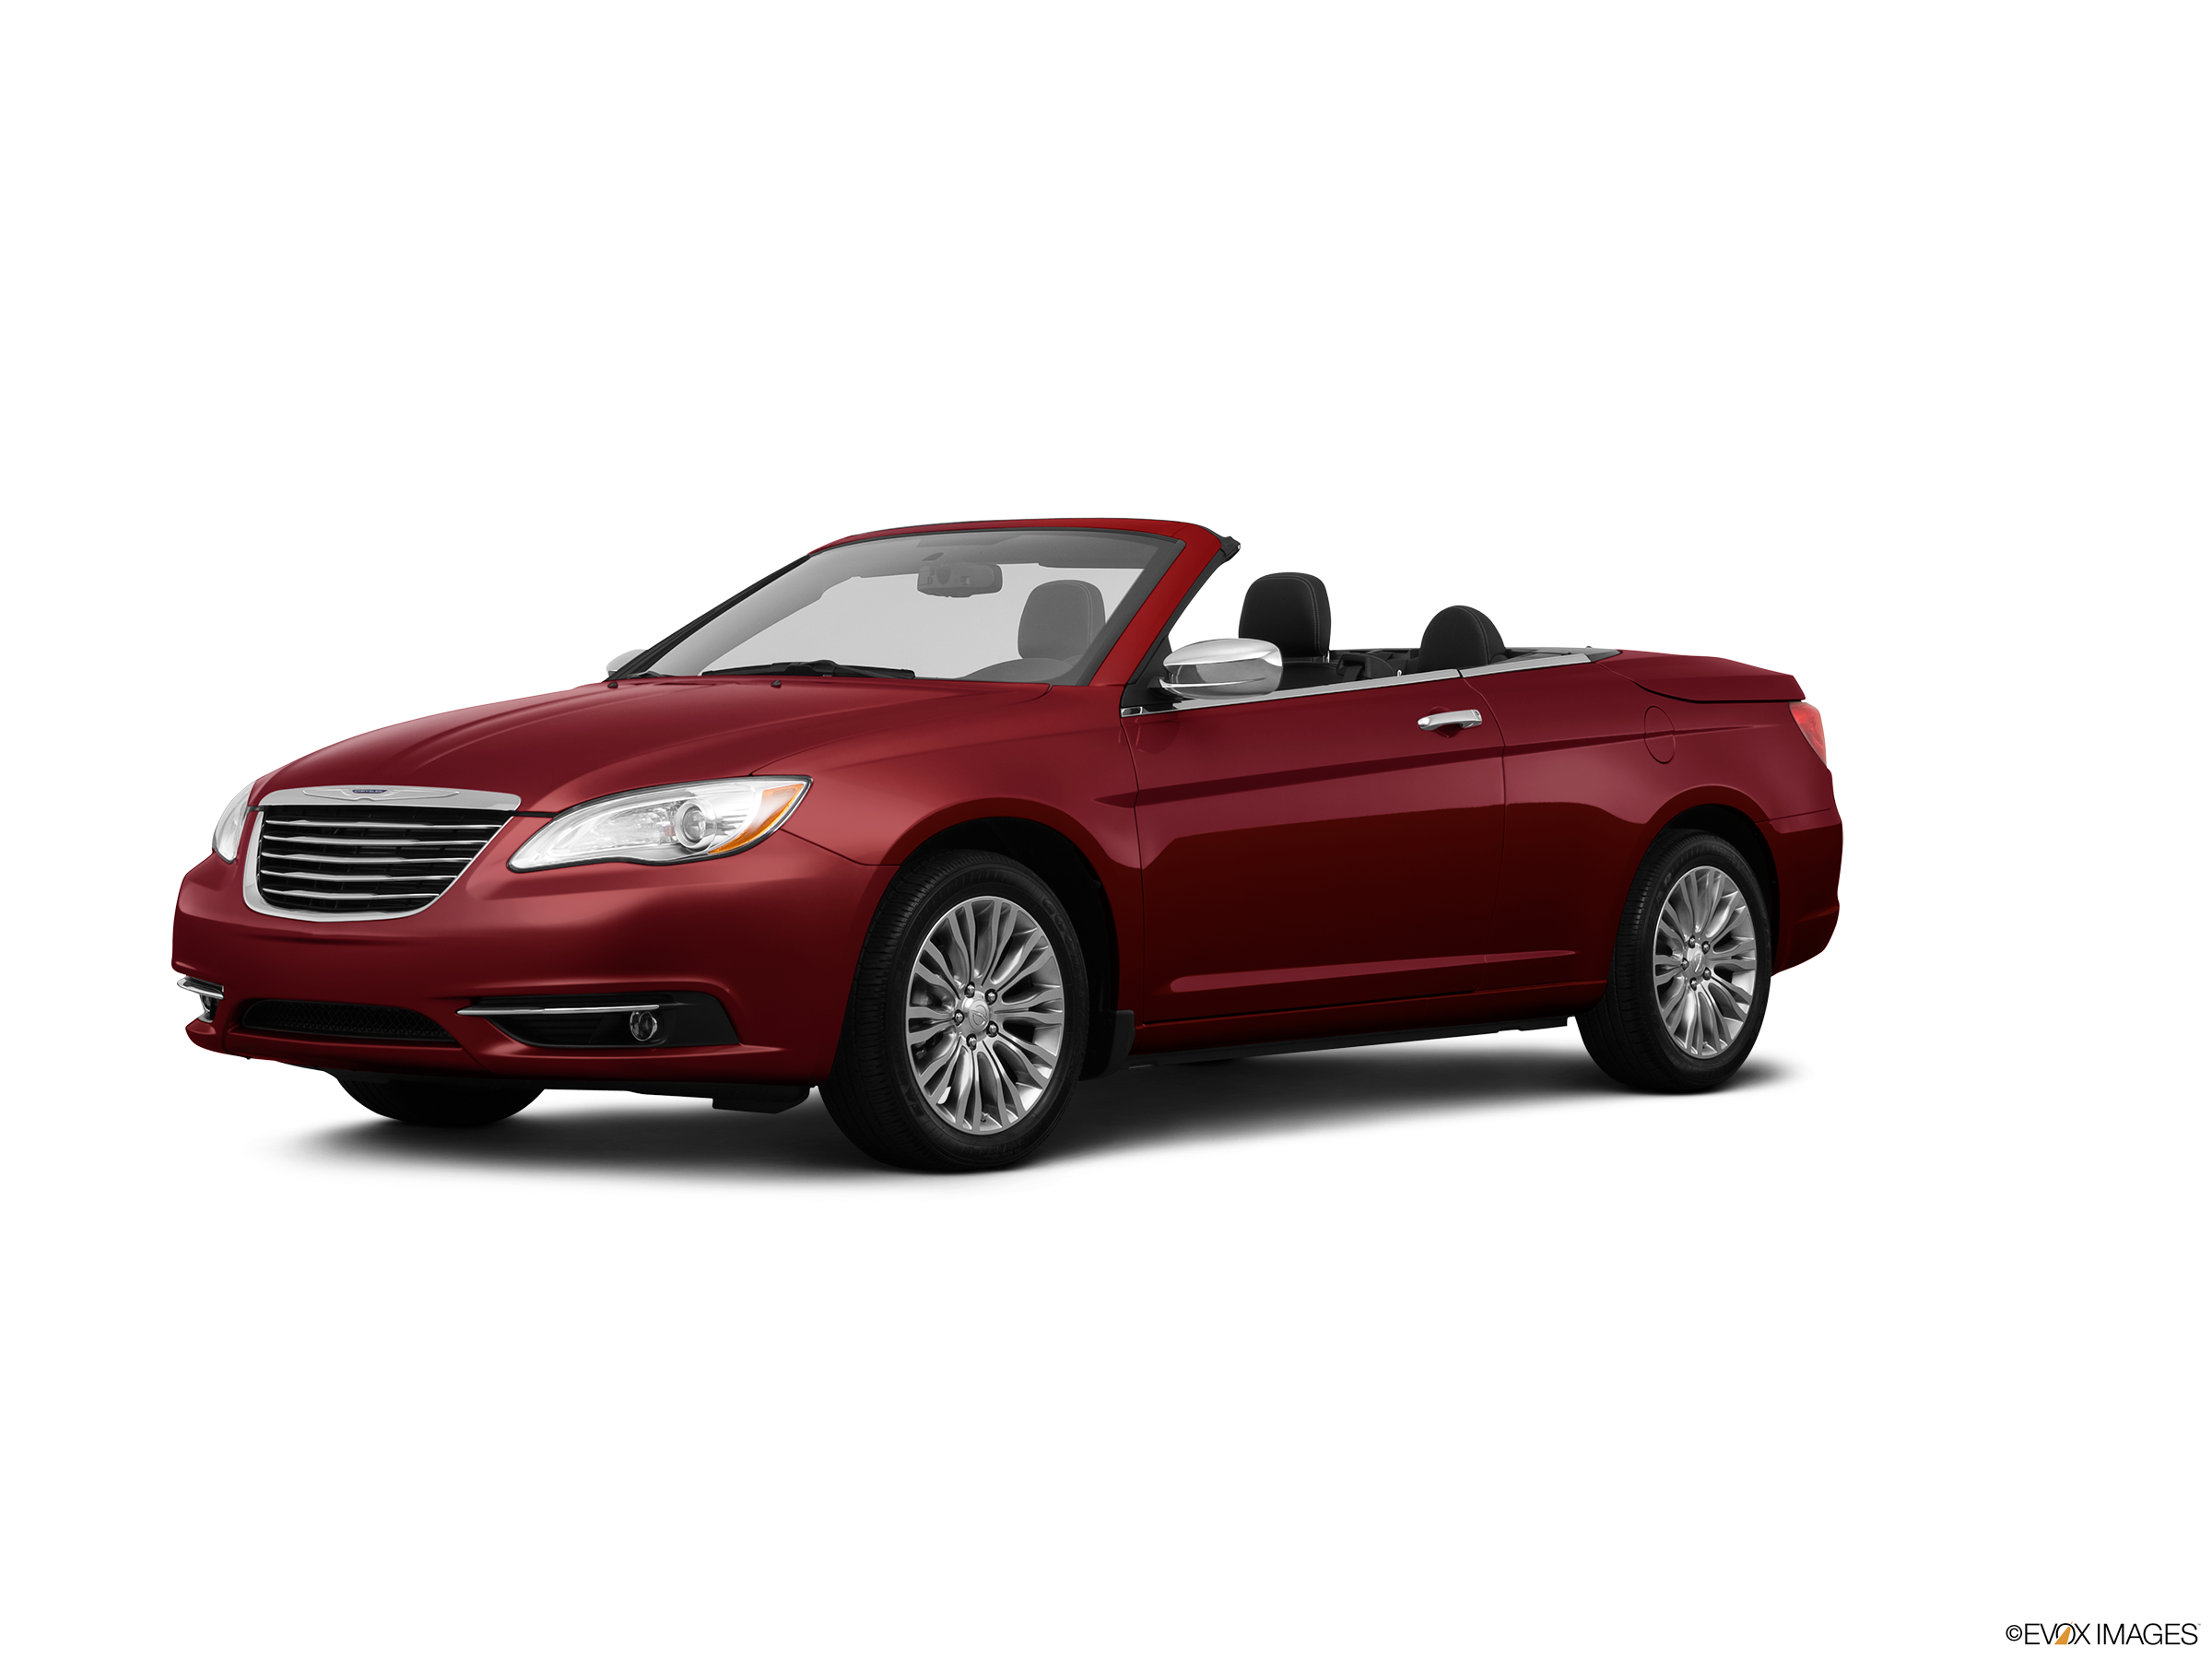 Used 2013 Chrysler 200 S Convertible 2D Pricing | Kelley ...